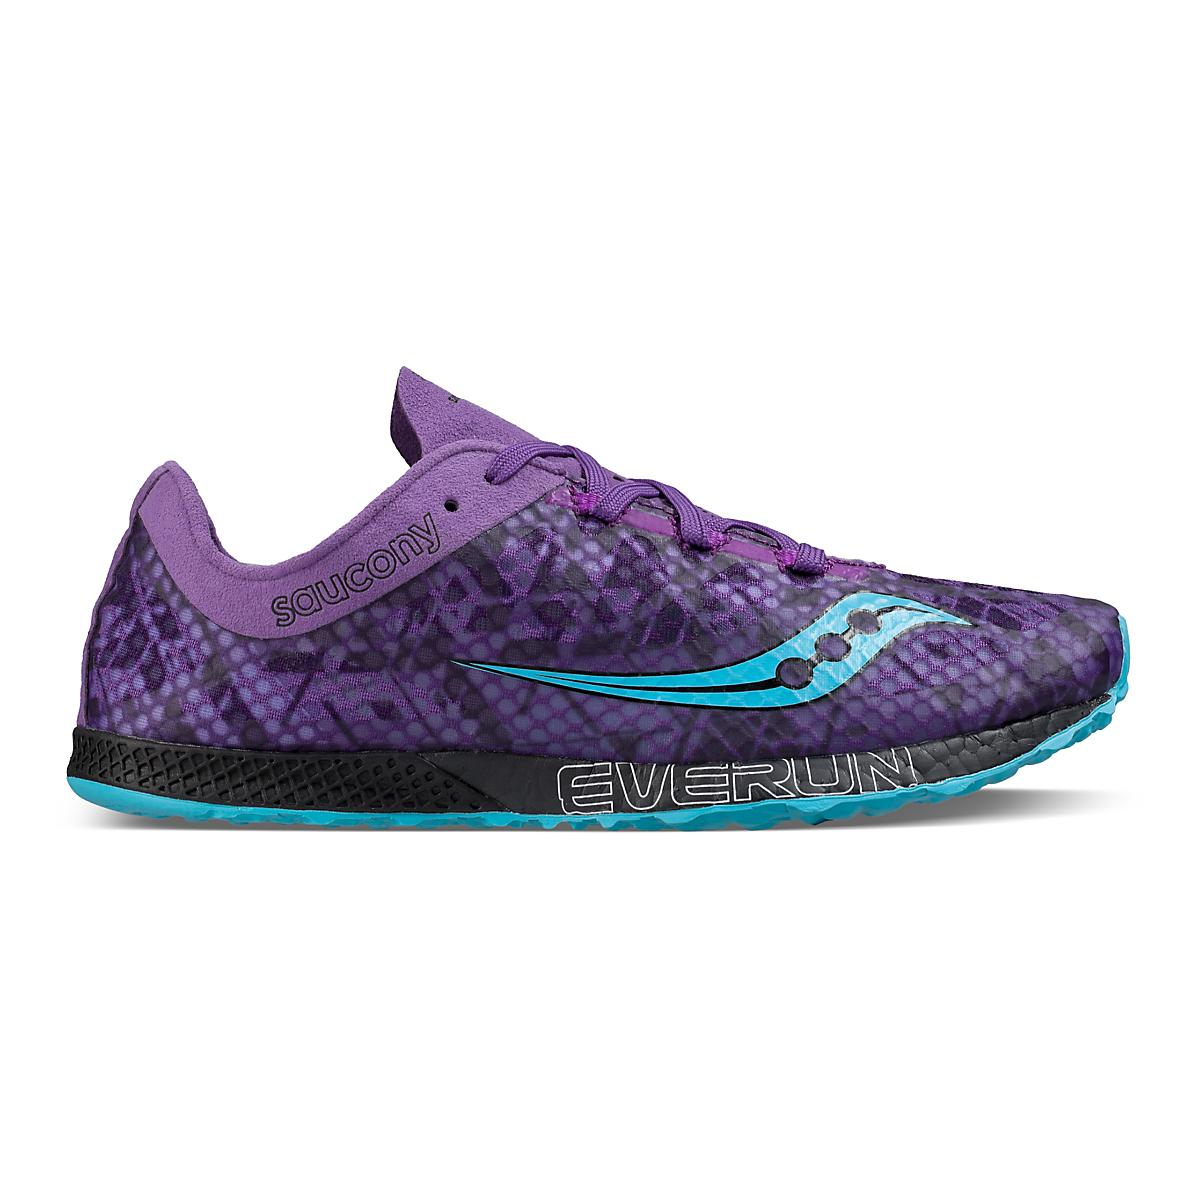 078e0ef96c59 Womens Saucony Endorphin Racer 2 Racing Shoe at Road Runner Sports